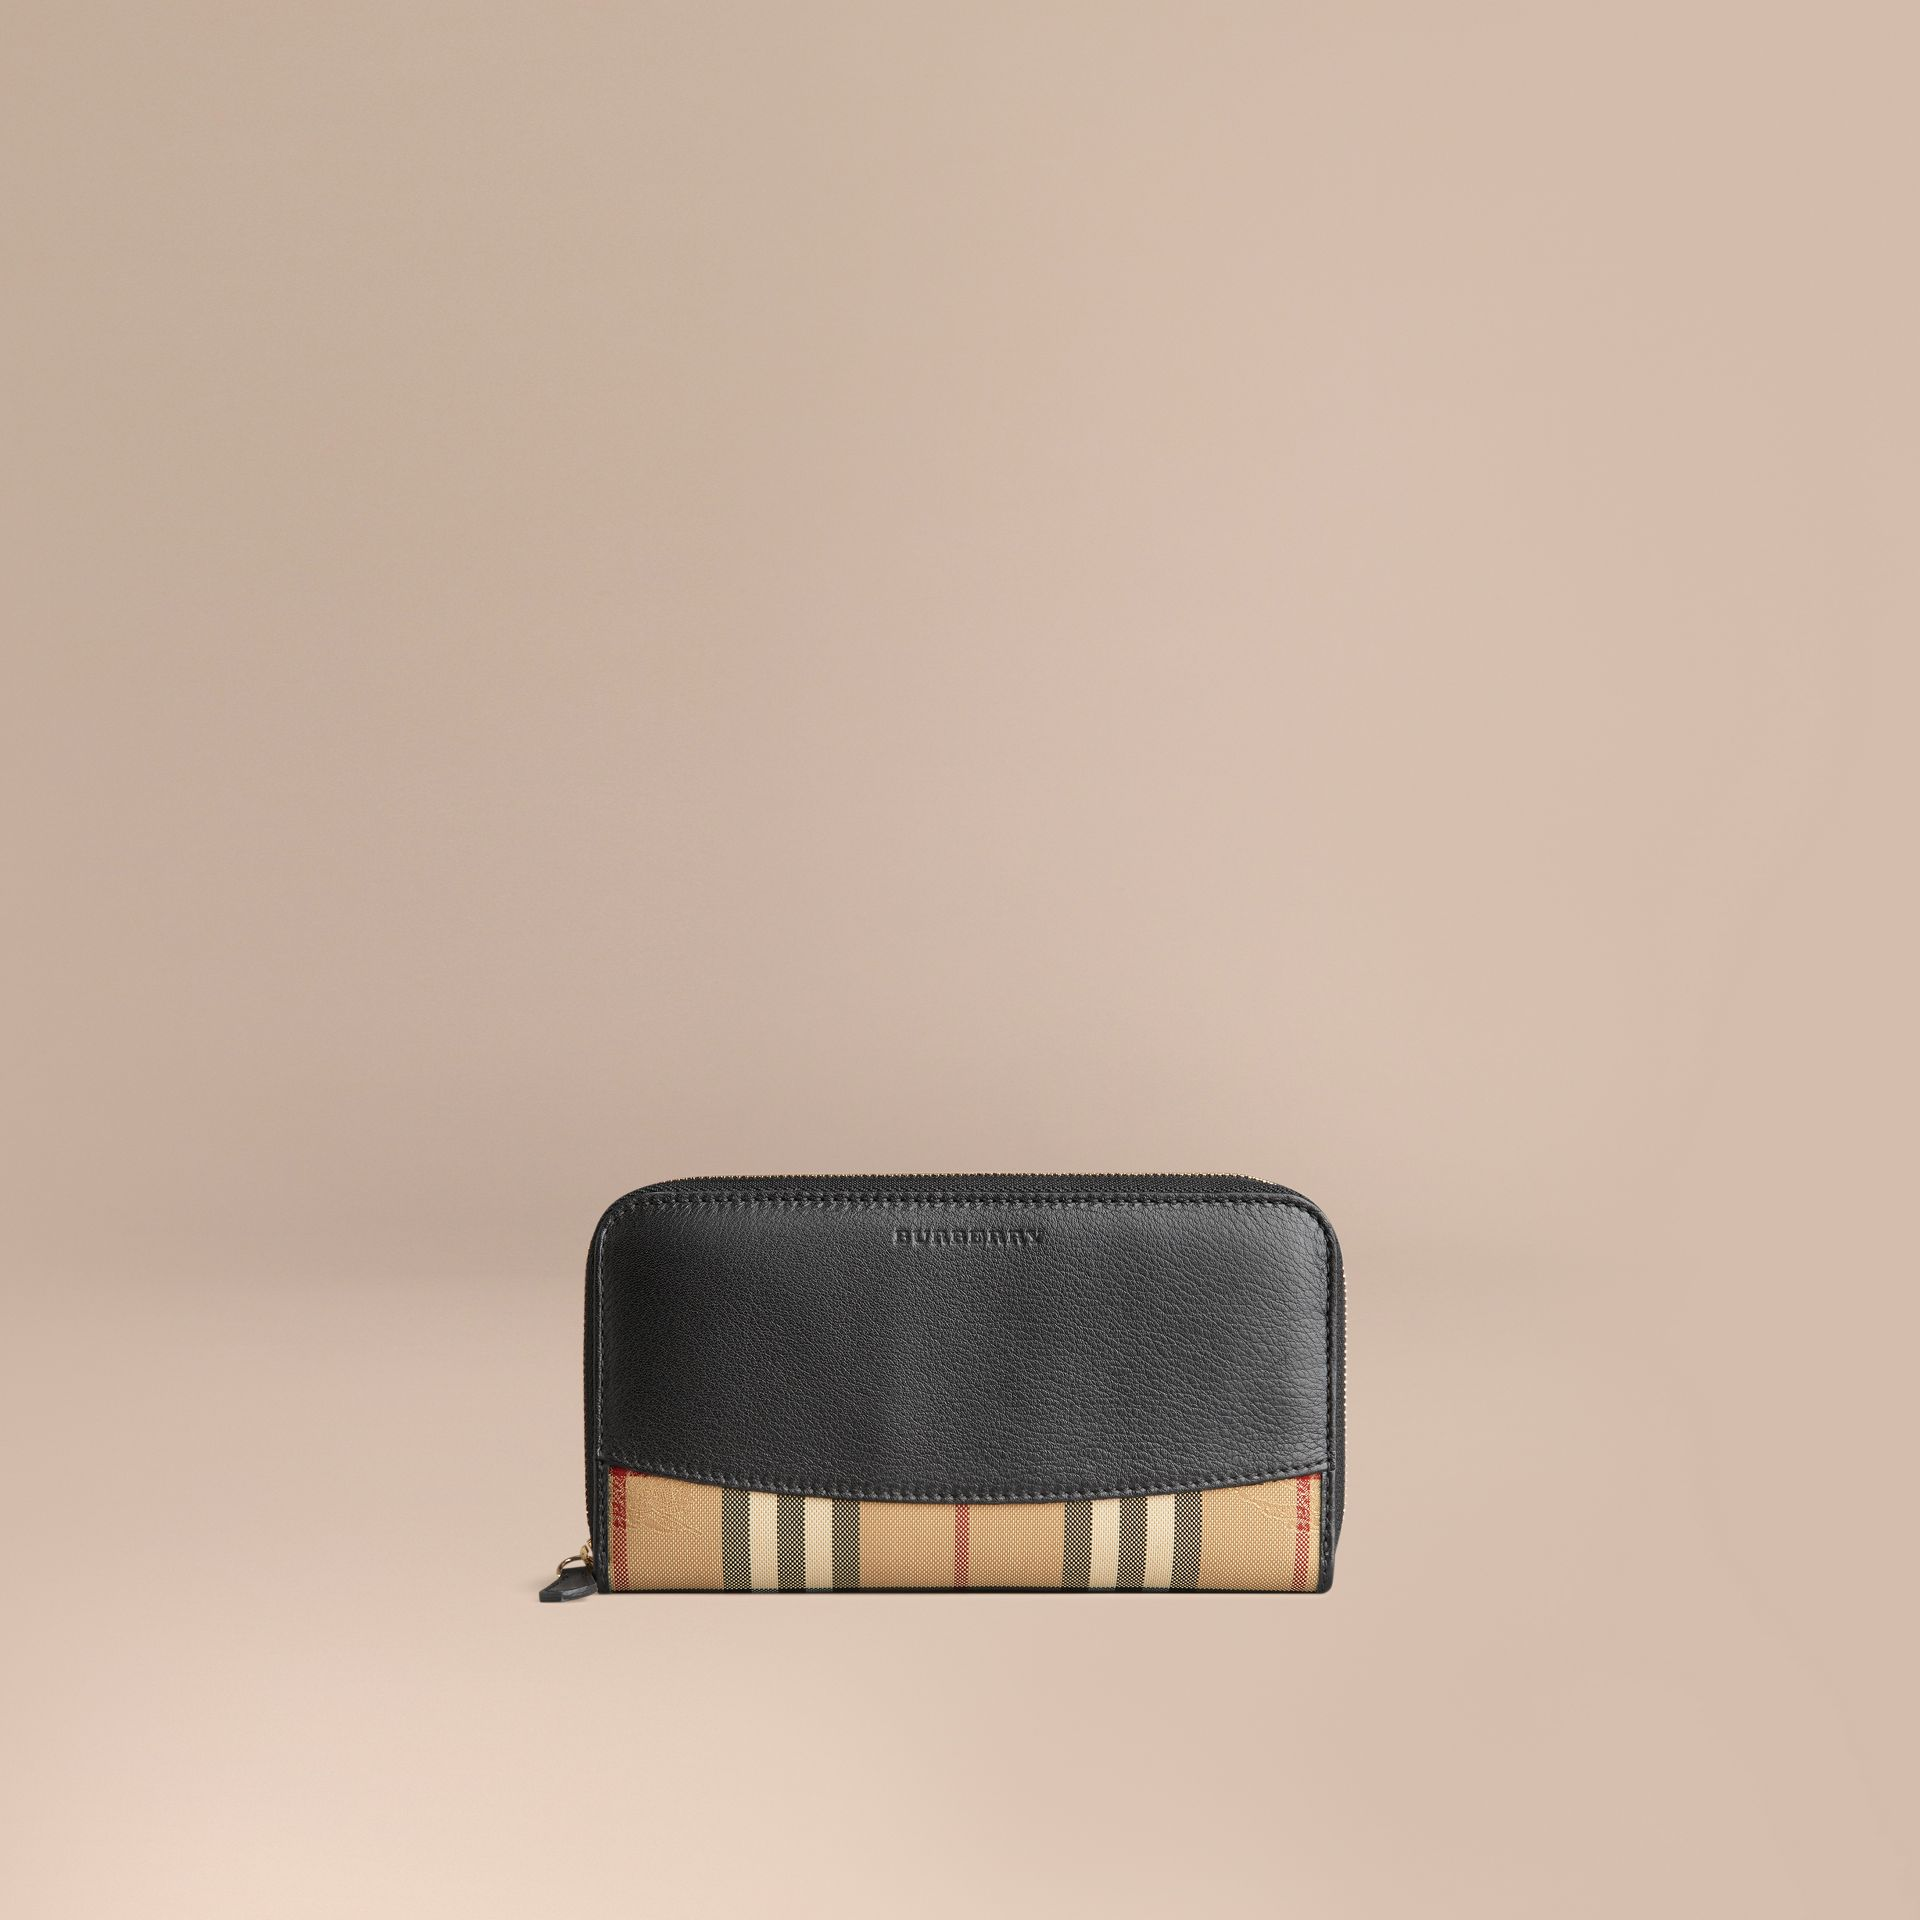 Horseferry Check and Leather Ziparound Wallet in Black - Women | Burberry - gallery image 1